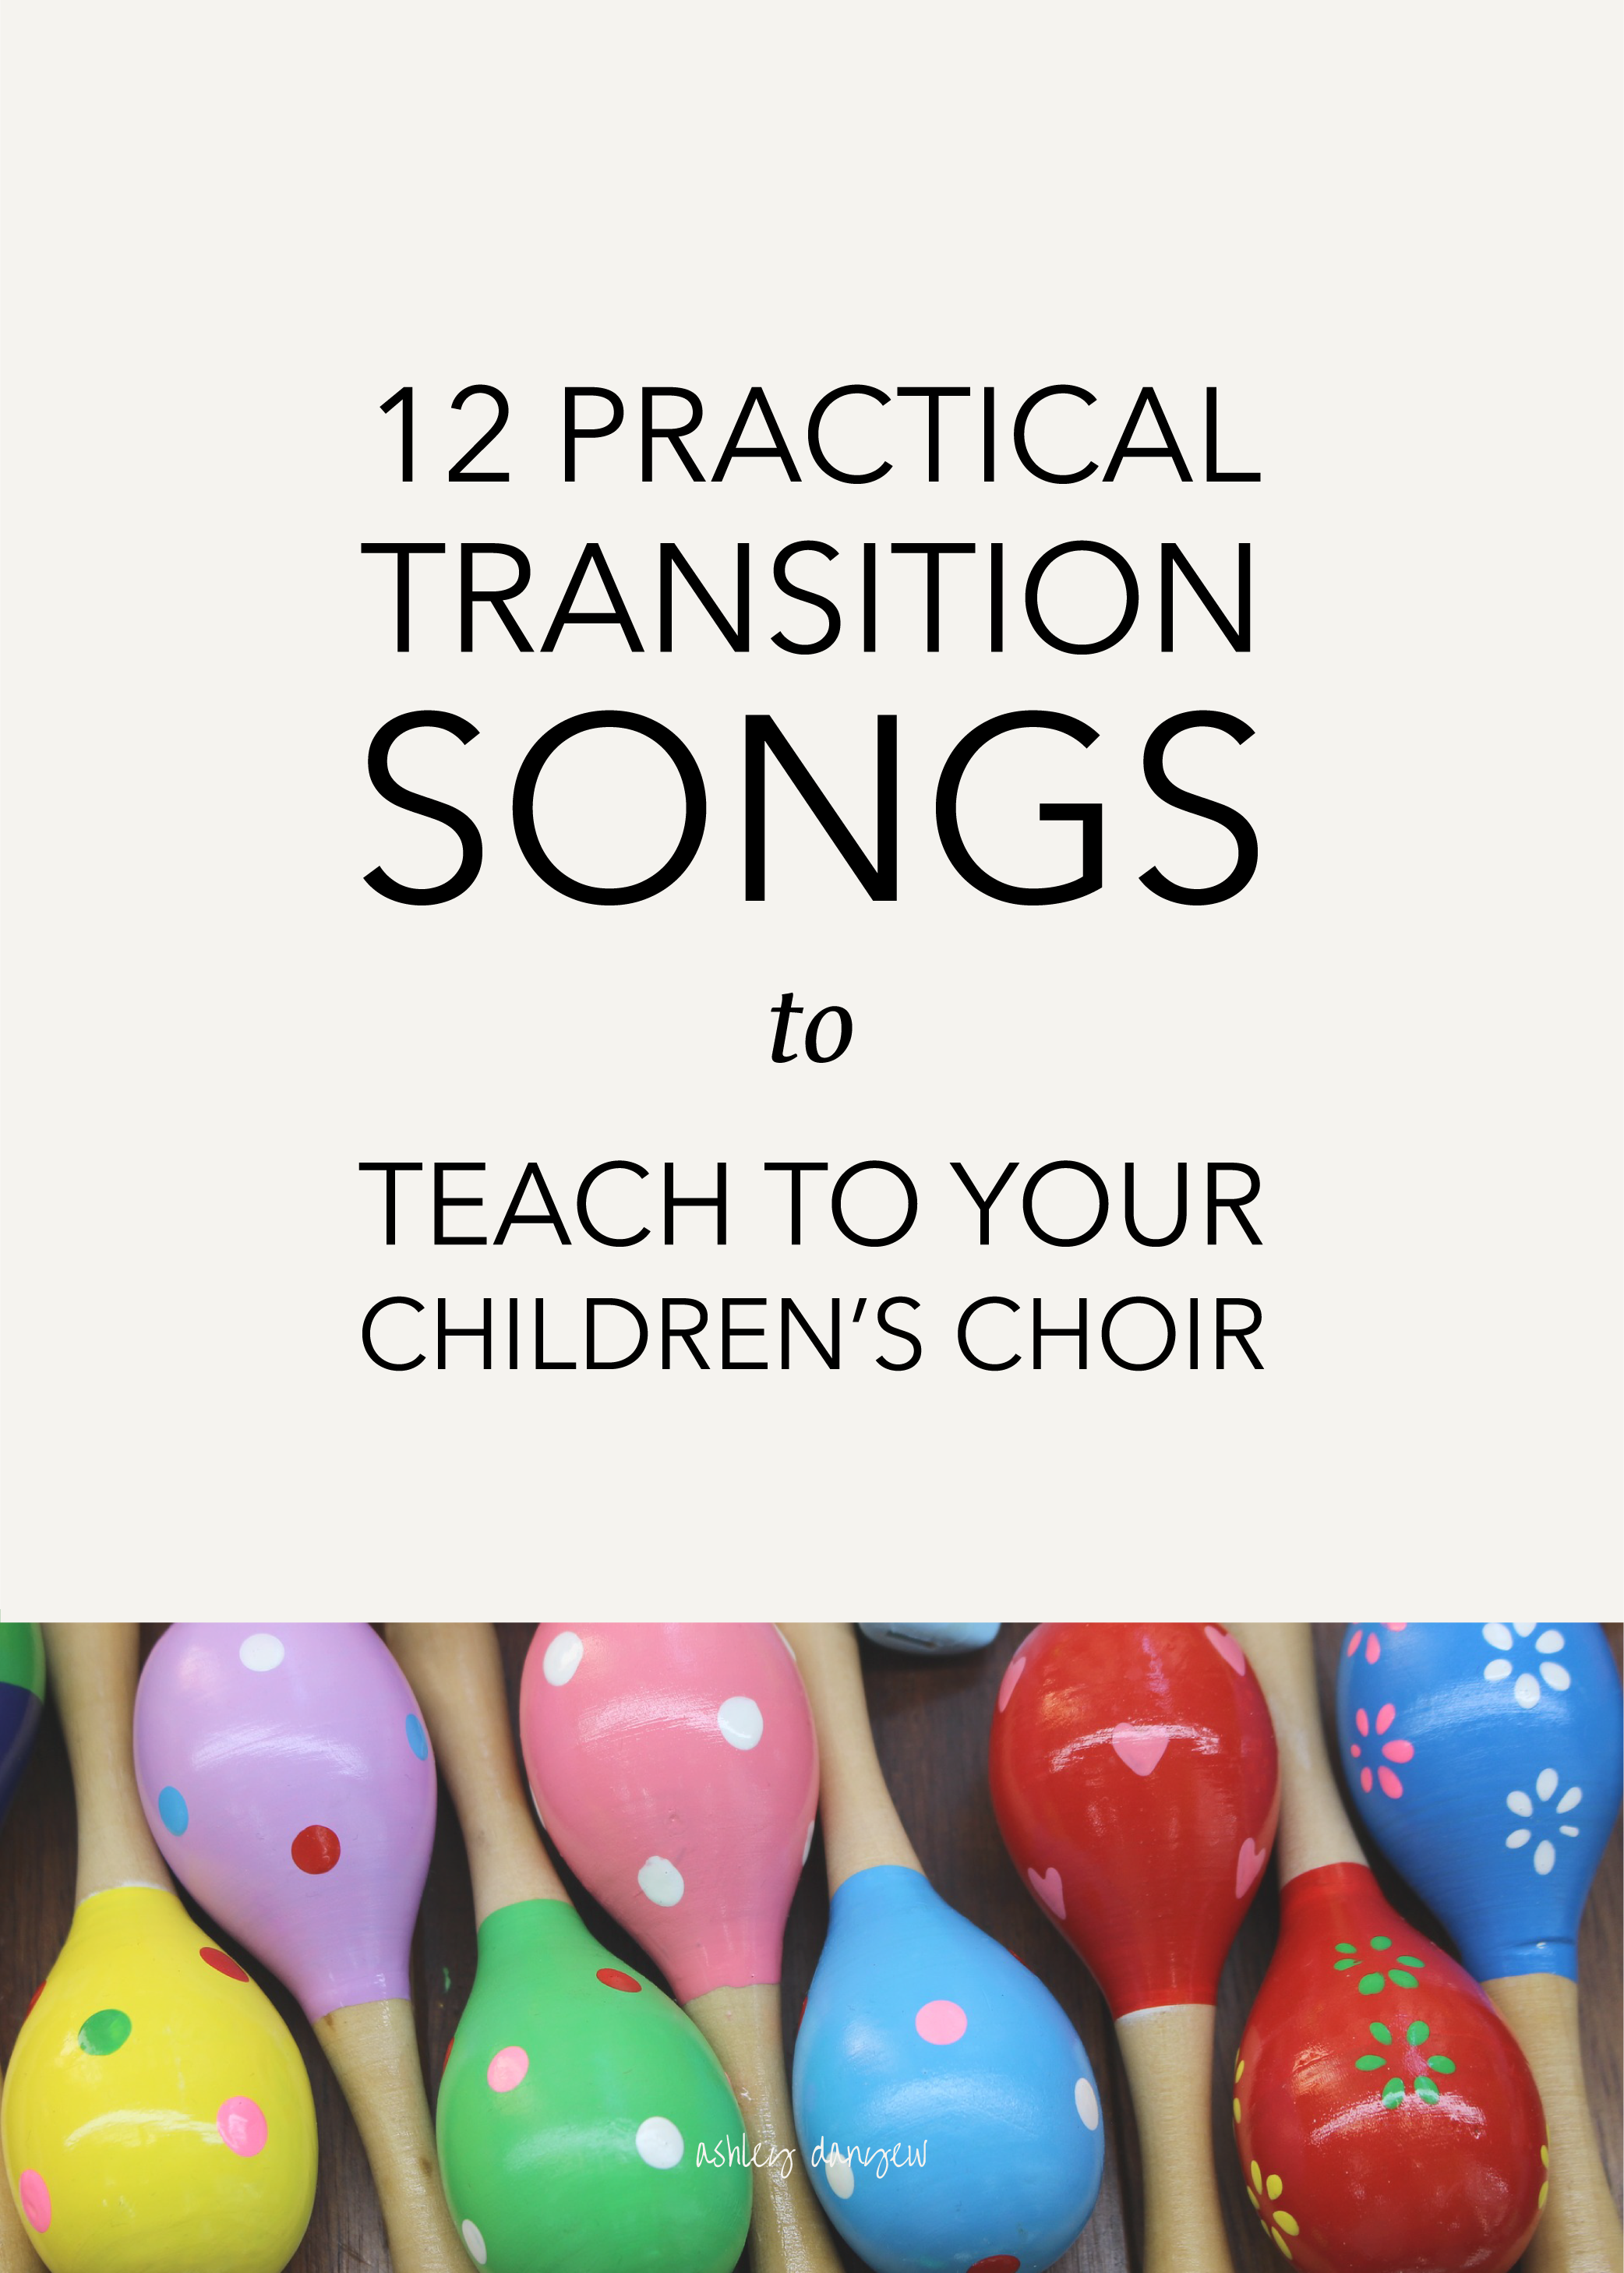 Copy of 12 Practical Transition Songs to Teach to Your Children's Choir